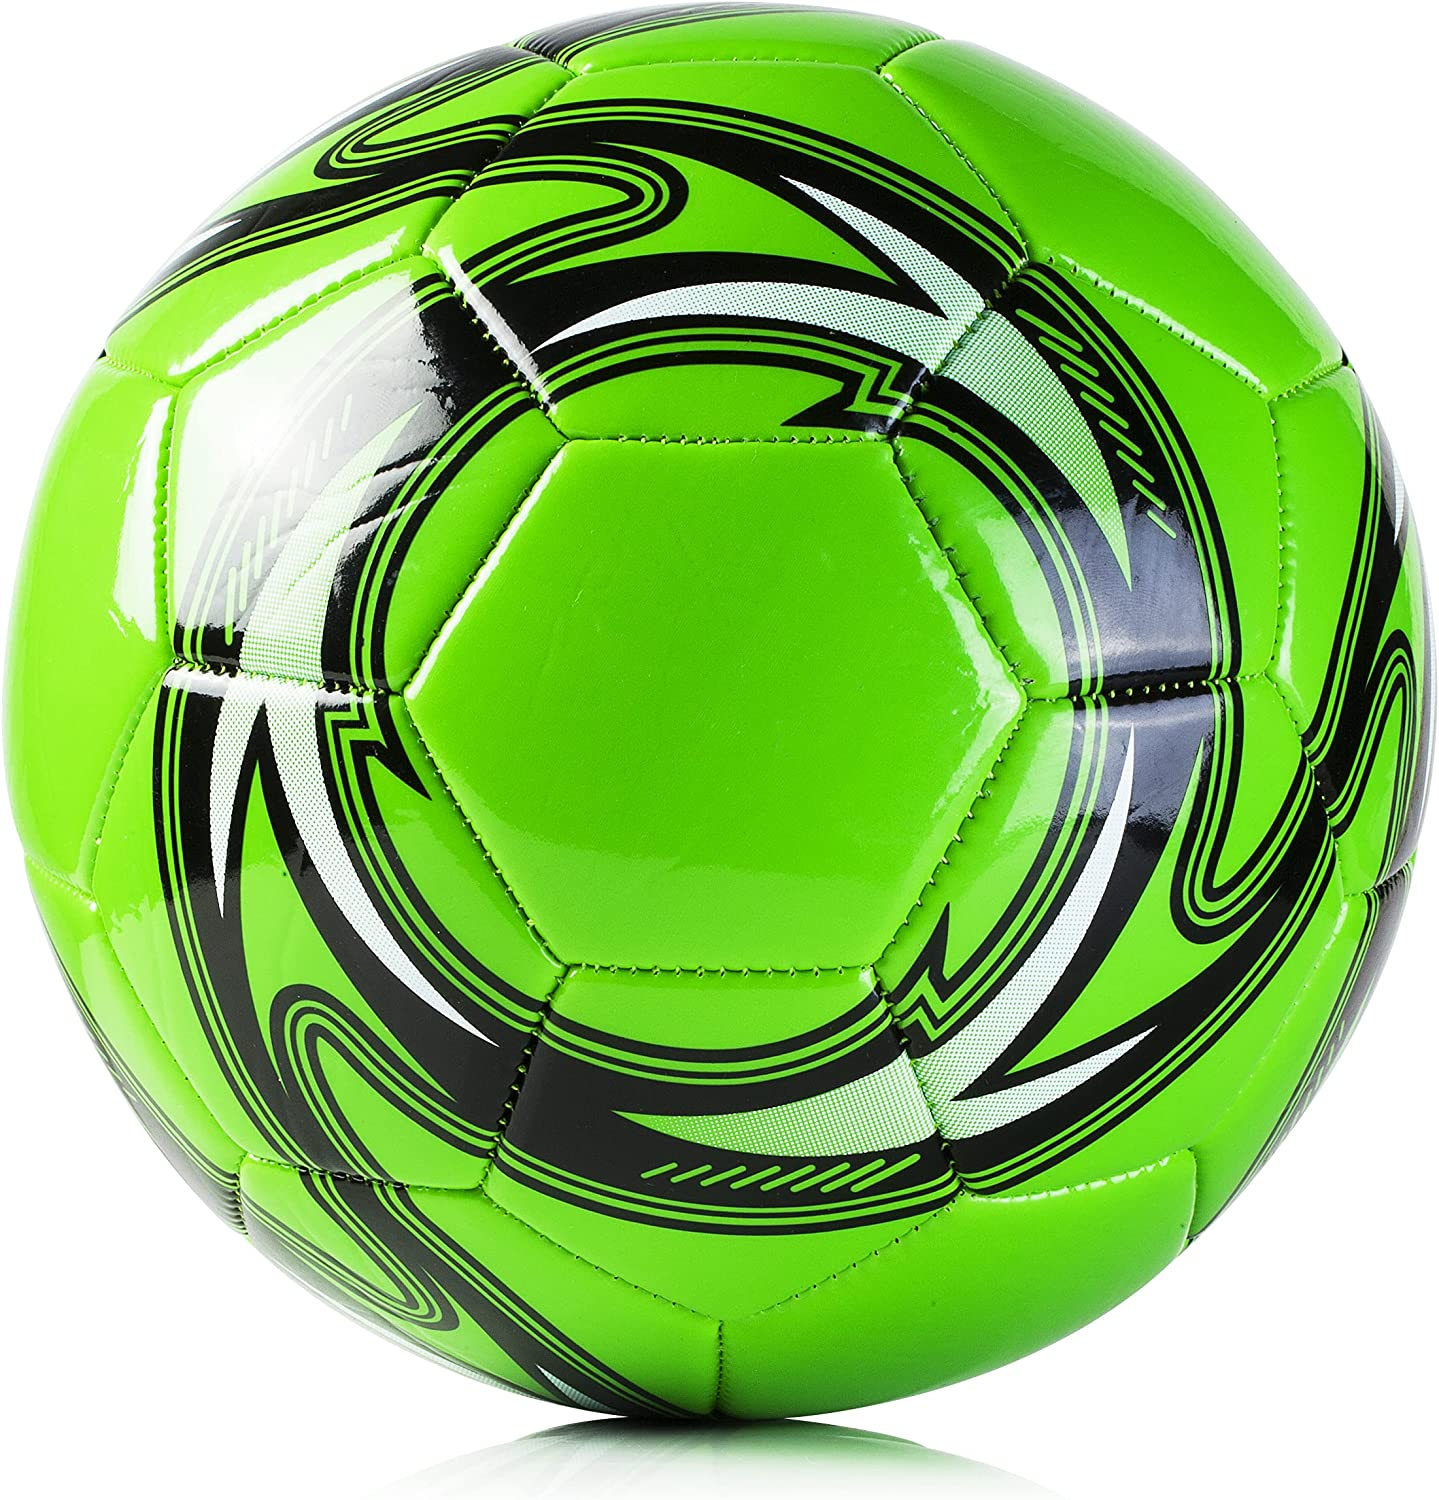 Western Star Soccer Ball Size 4 & Size 5 - Official Match Weight - 5 Colors - Youth & Adult Soccer Players - Inflate & Play with Durable, Long-Lasting Construction & Attractive Soccer Balls